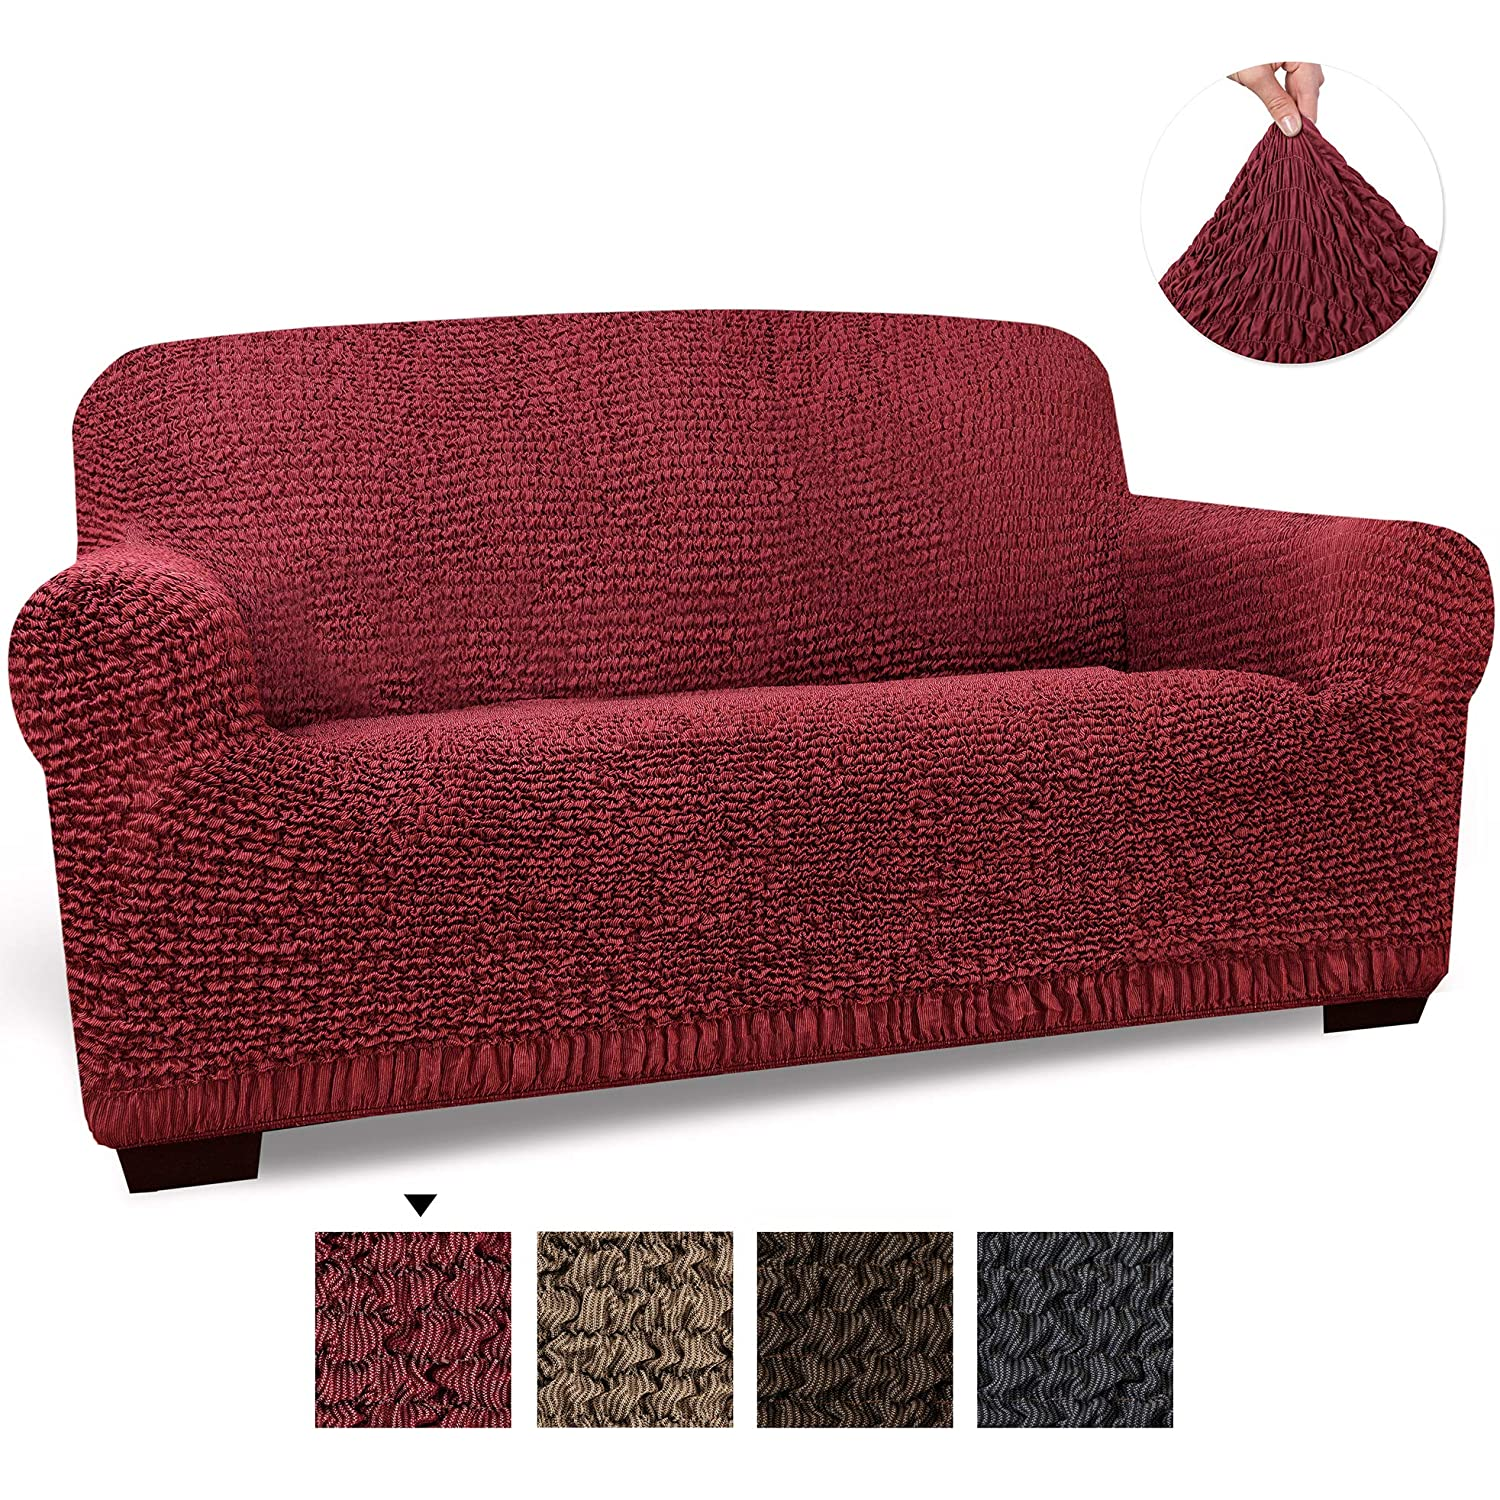 Loveseat Cover - Loveseat Slipcovers - Loveseat Couch Covers - Cotton Fabric Slipcovers - 1-piece Form Fit Stretch Stylish Furniture Cover - Mille ...